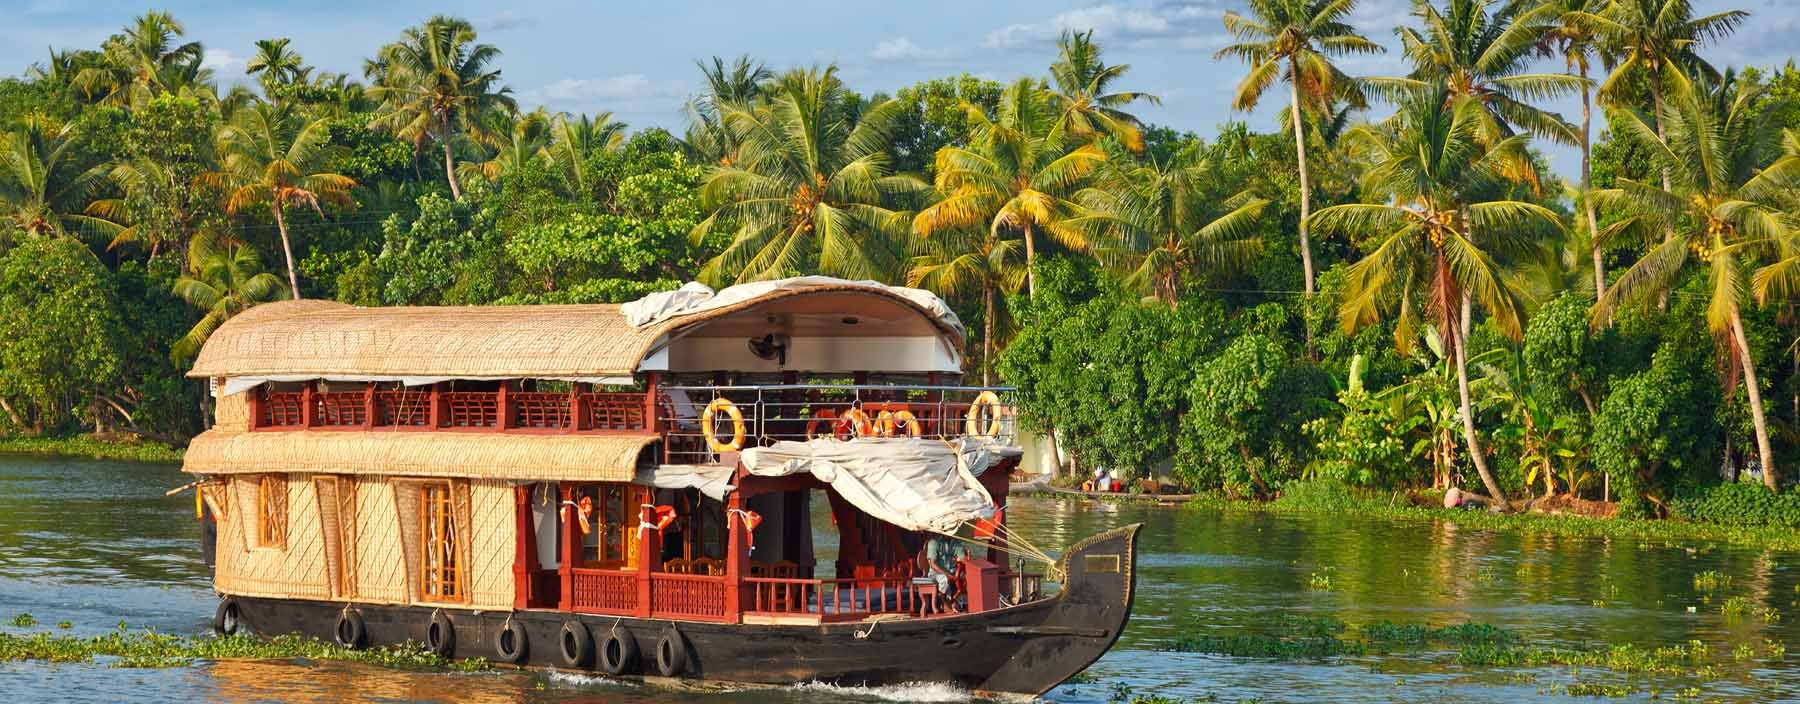 in, kerala, houseboat on kerala backwaters 2.jpg